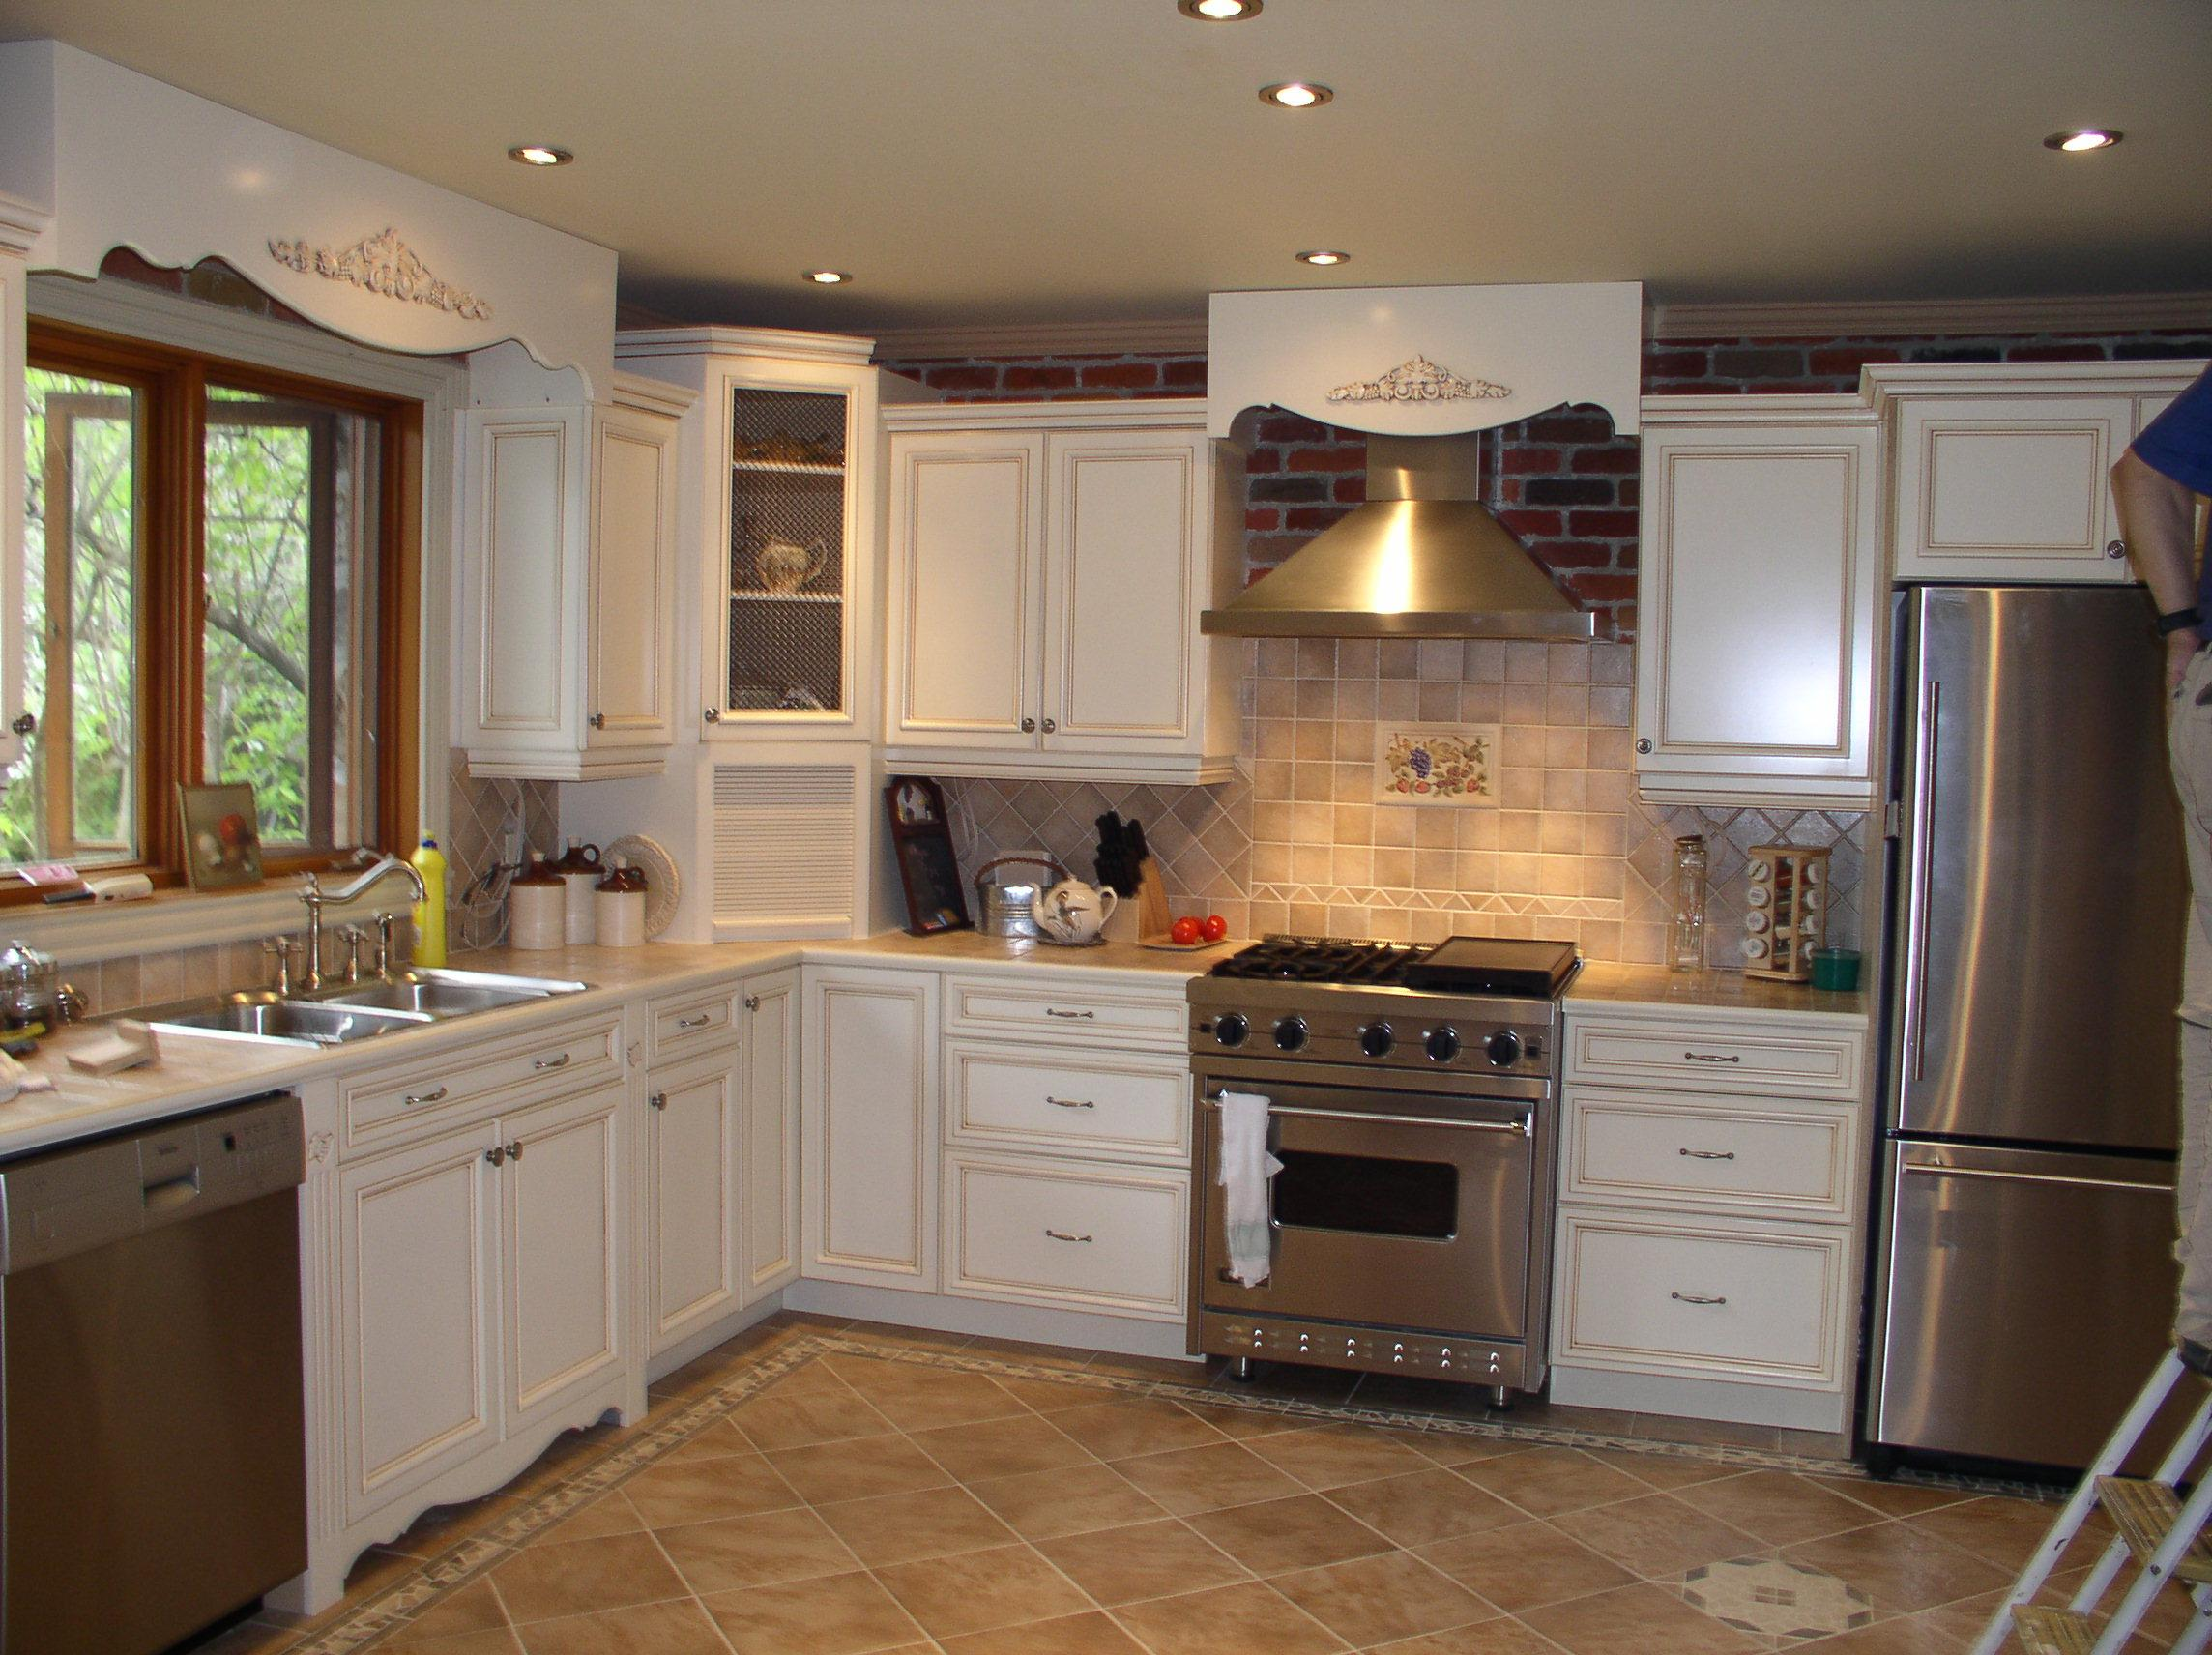 kitchens with white cabinets and tile floors herringbone ceramic tile for your kitchen floor fox news south texas